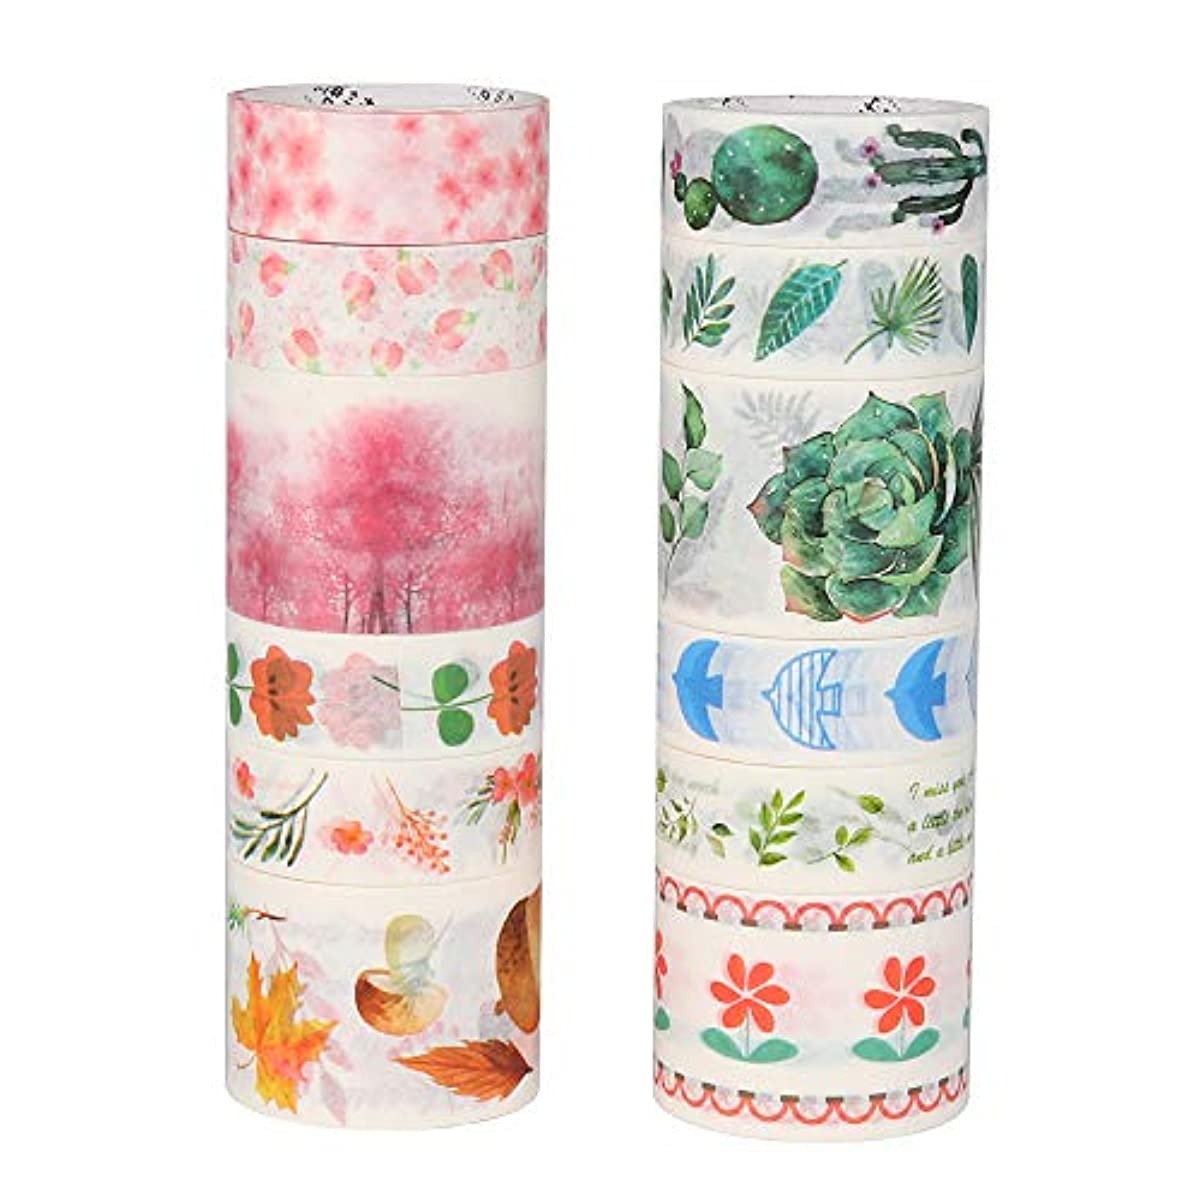 Molshine 12Rolls(Length 6.6ft/Roll) Washi Masking Tape Set,Adhesive Paper,Crafts Tape for DIY,Planners,Scrapbook,Object Decorative,Collection,Gift Wrapping-Flower Plant Series